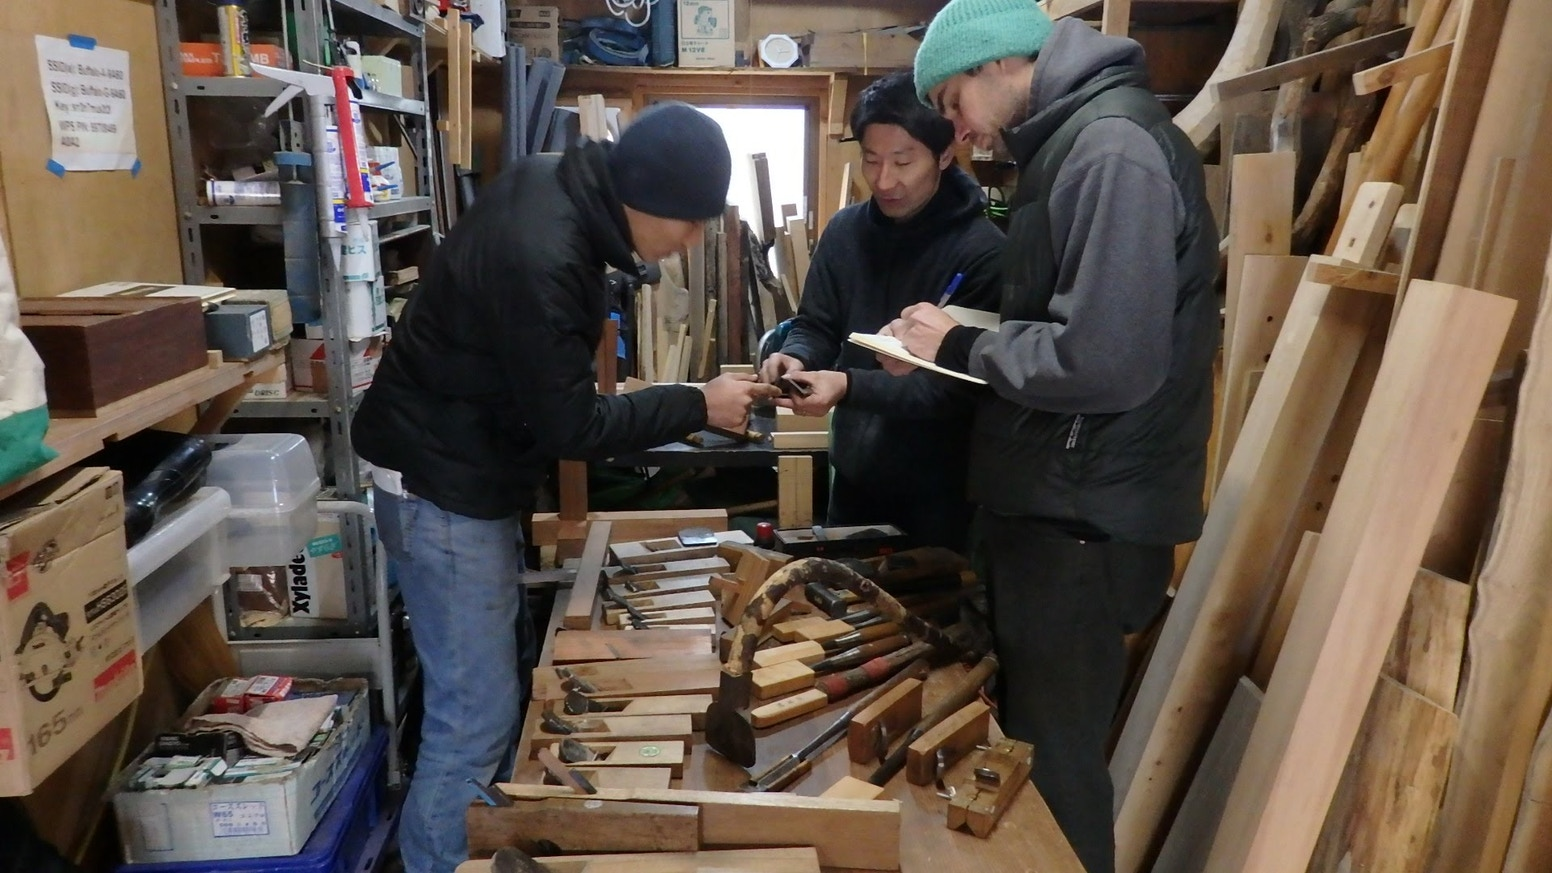 Study Woodworking in Japan! by Takami Kawai 河井 尊臣